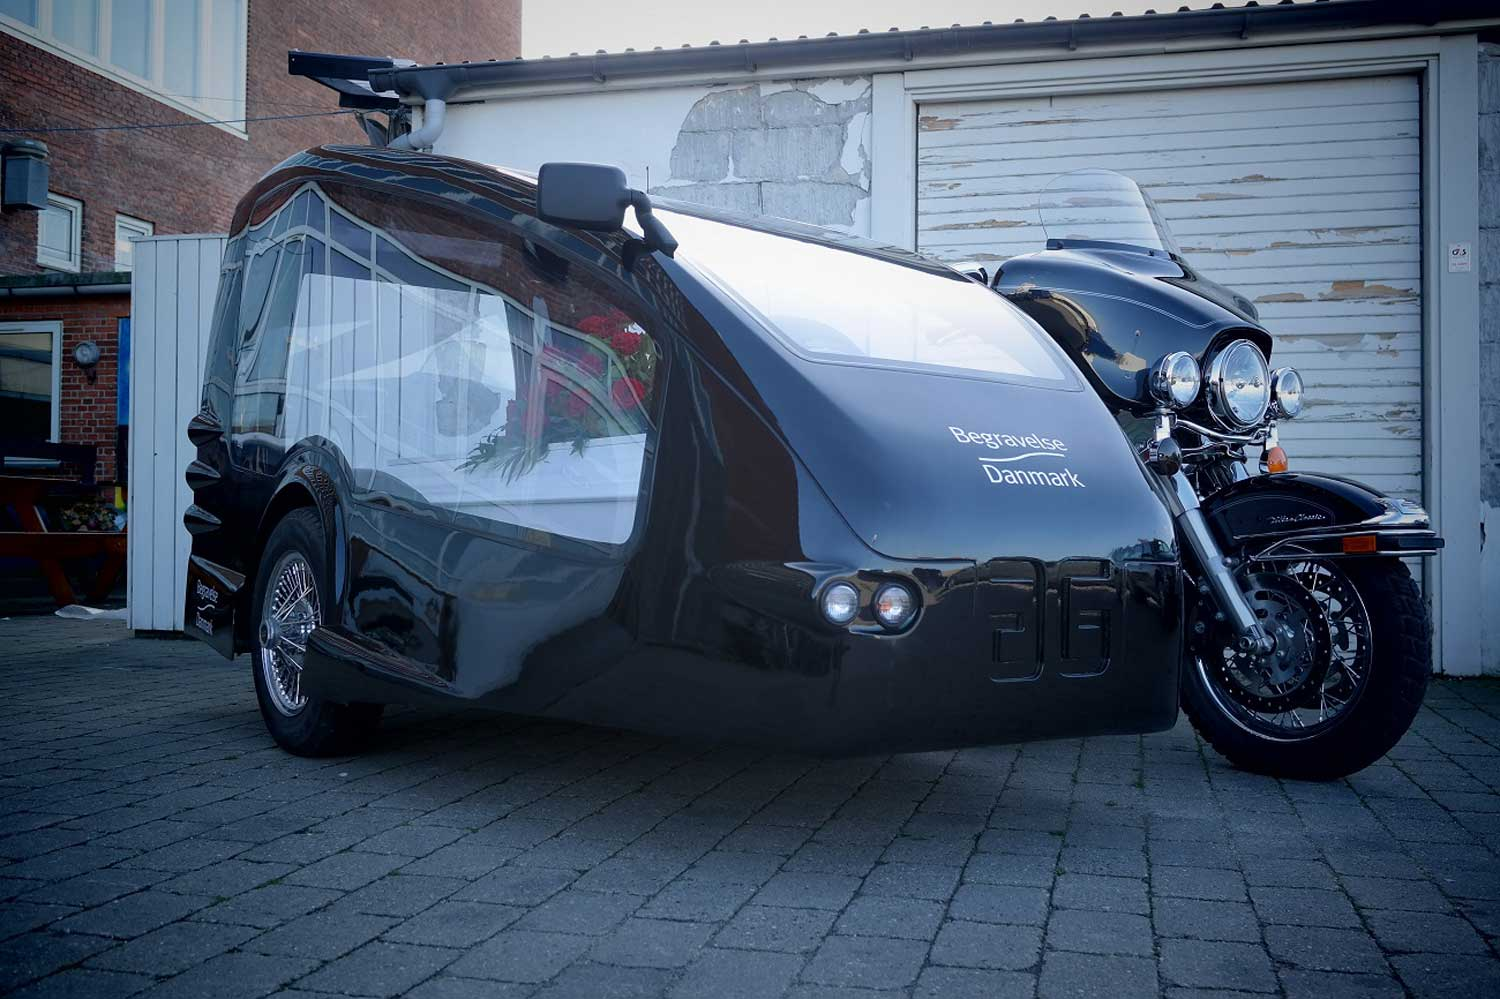 Motorcycle hearse funeral